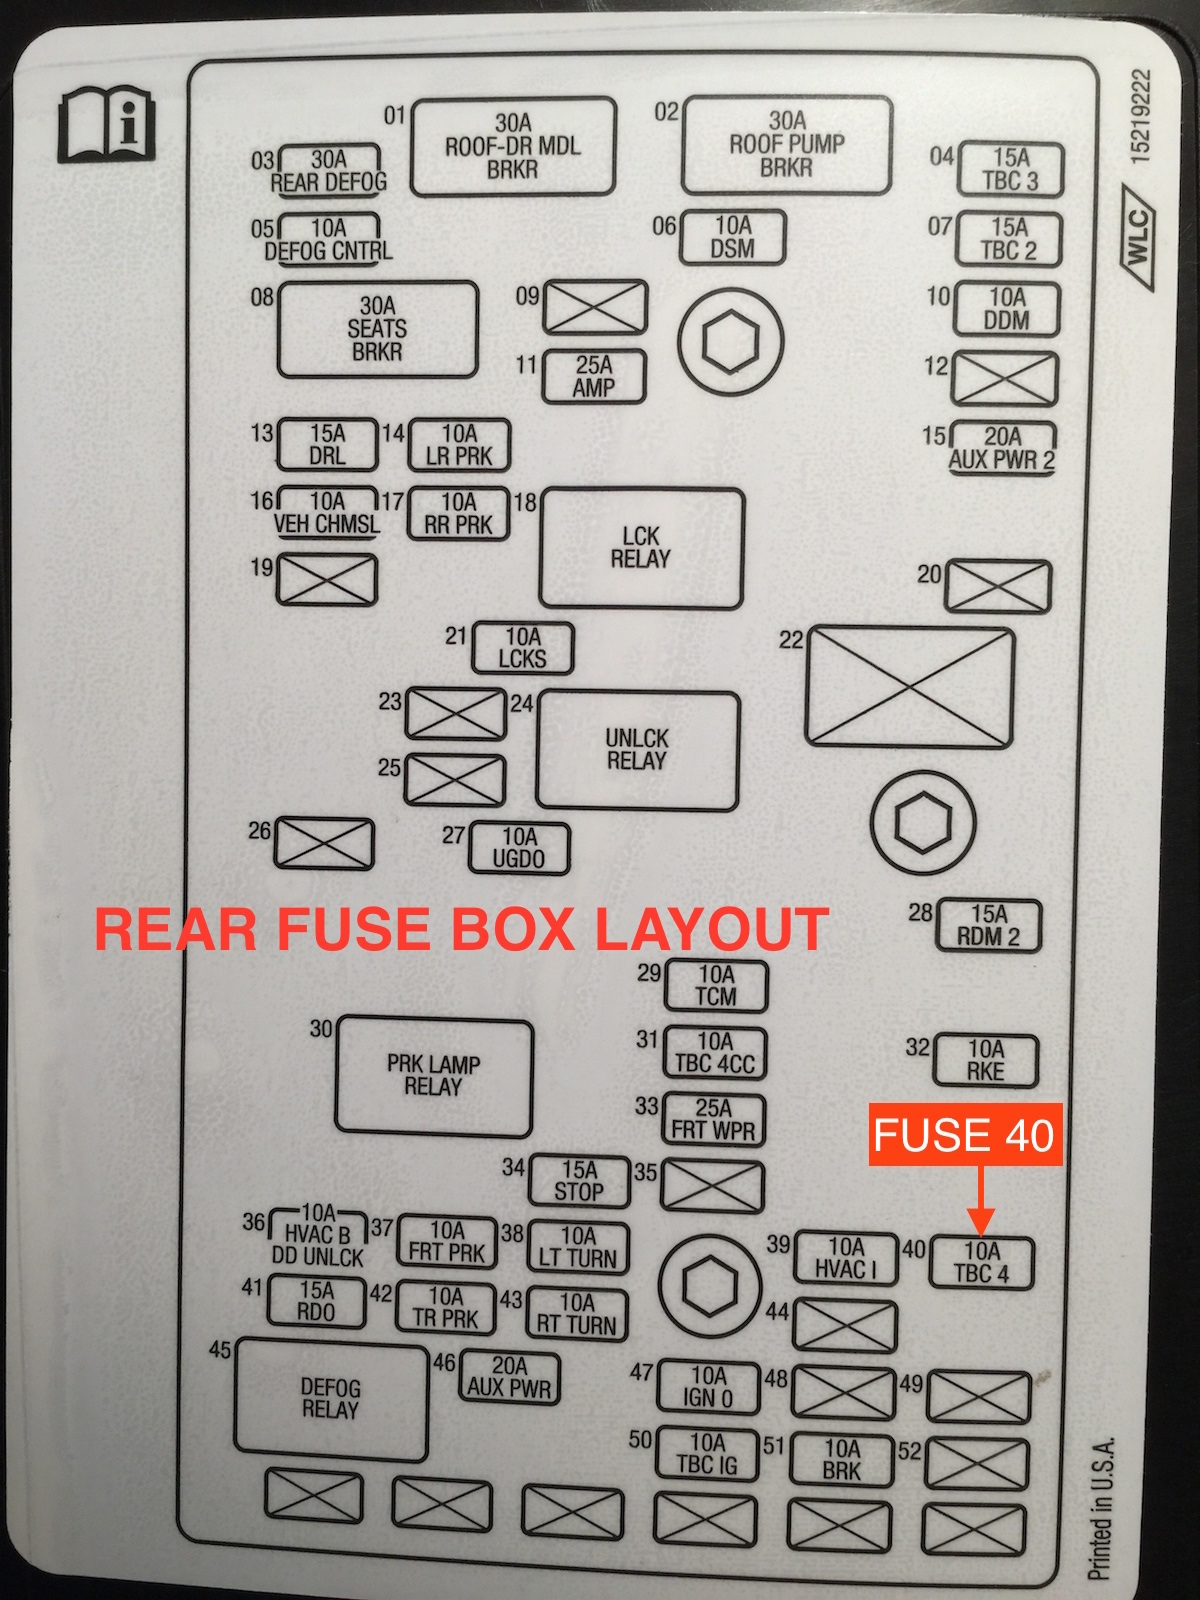 258345d1436789395 rear fuse box 101 img_2200 copy 2 rear fuse box 101 chevy ssr forum 1974 Chevy Truck Fuse Box Diagram at webbmarketing.co